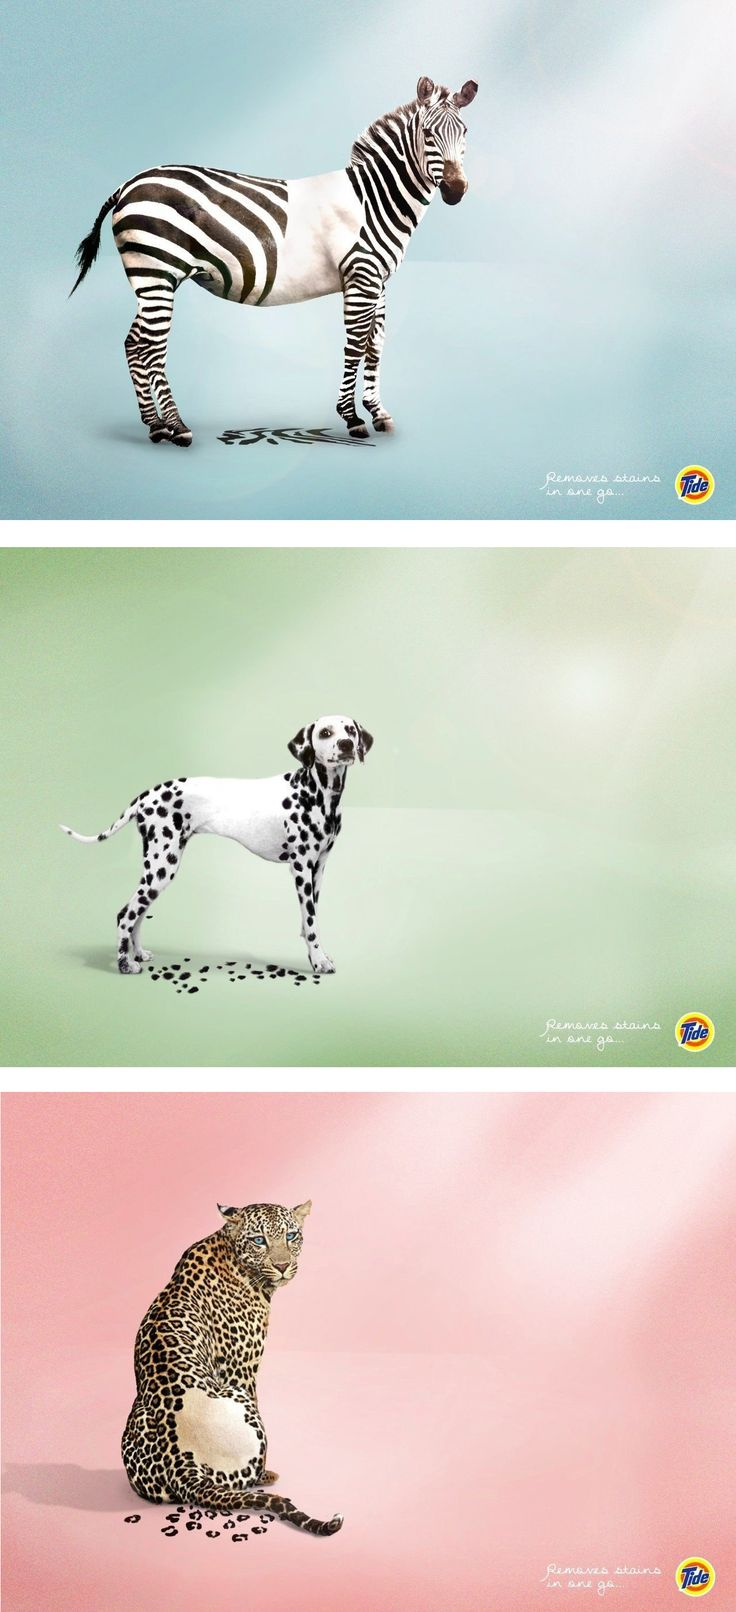 I really like this ad. It gives its exact point right from when u see the animal and then the Tide logo. I really like what they did here. Also the stripes/spots of each animal are laying on the ground as if they lost them. Well done